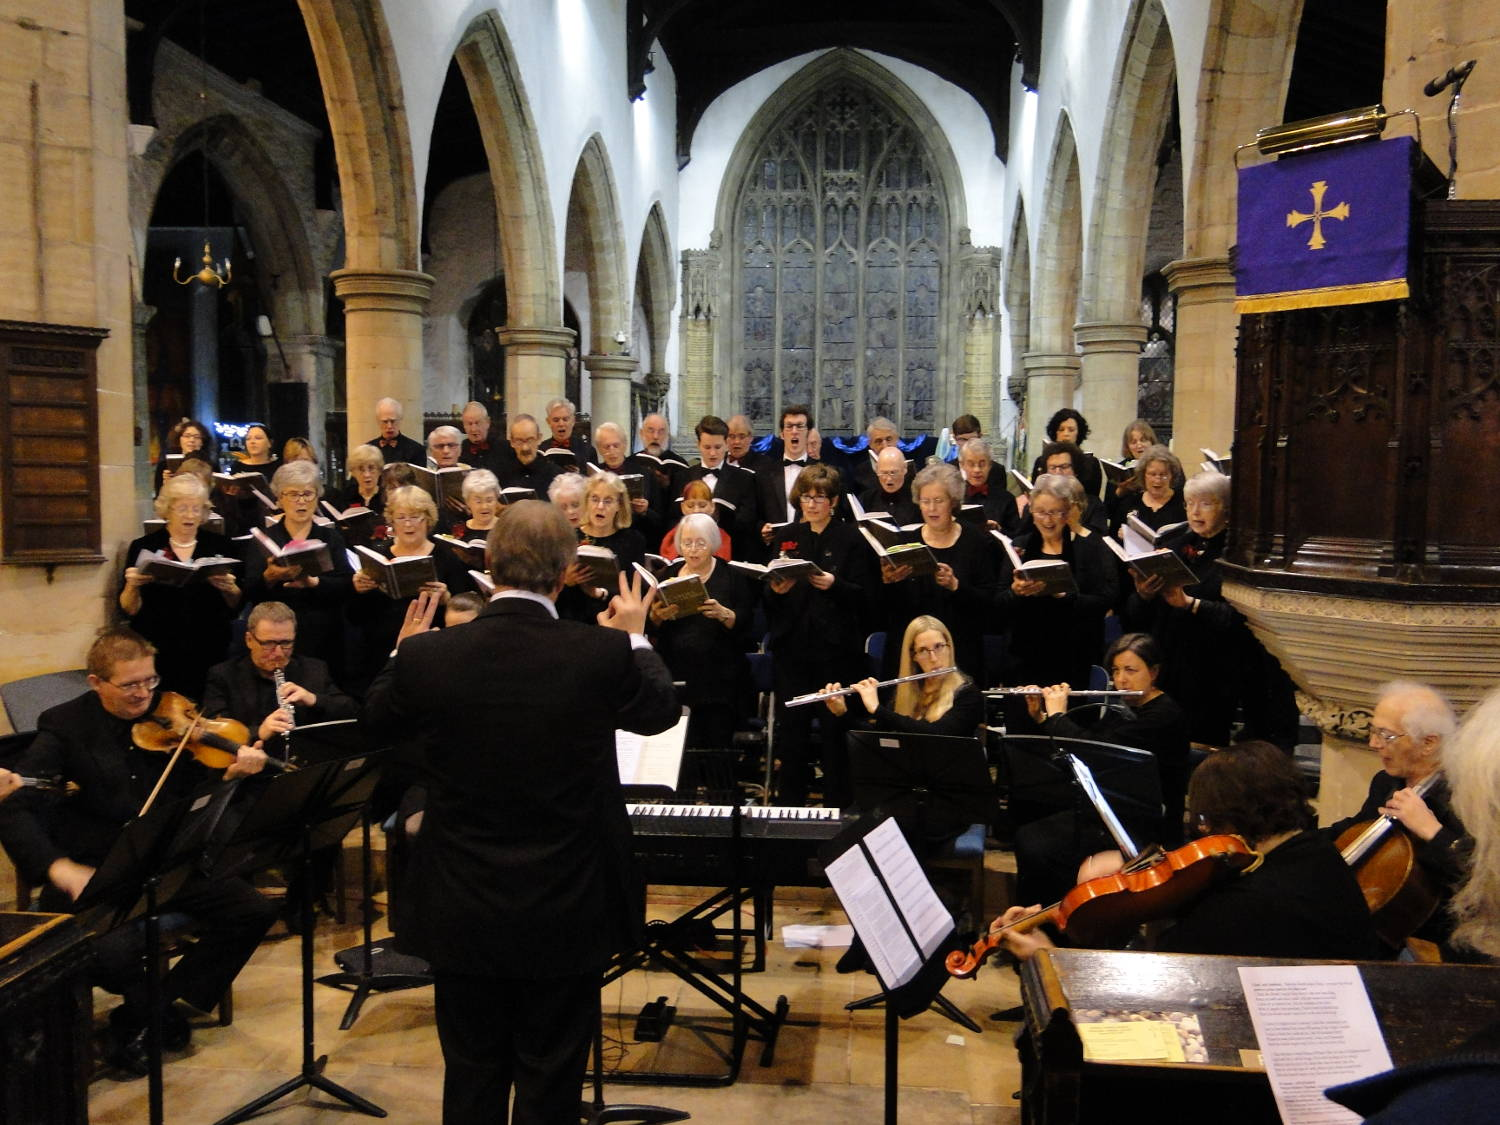 <b>The Glories of Christmas Concert &#8211; 11th December 2016</b><br> 